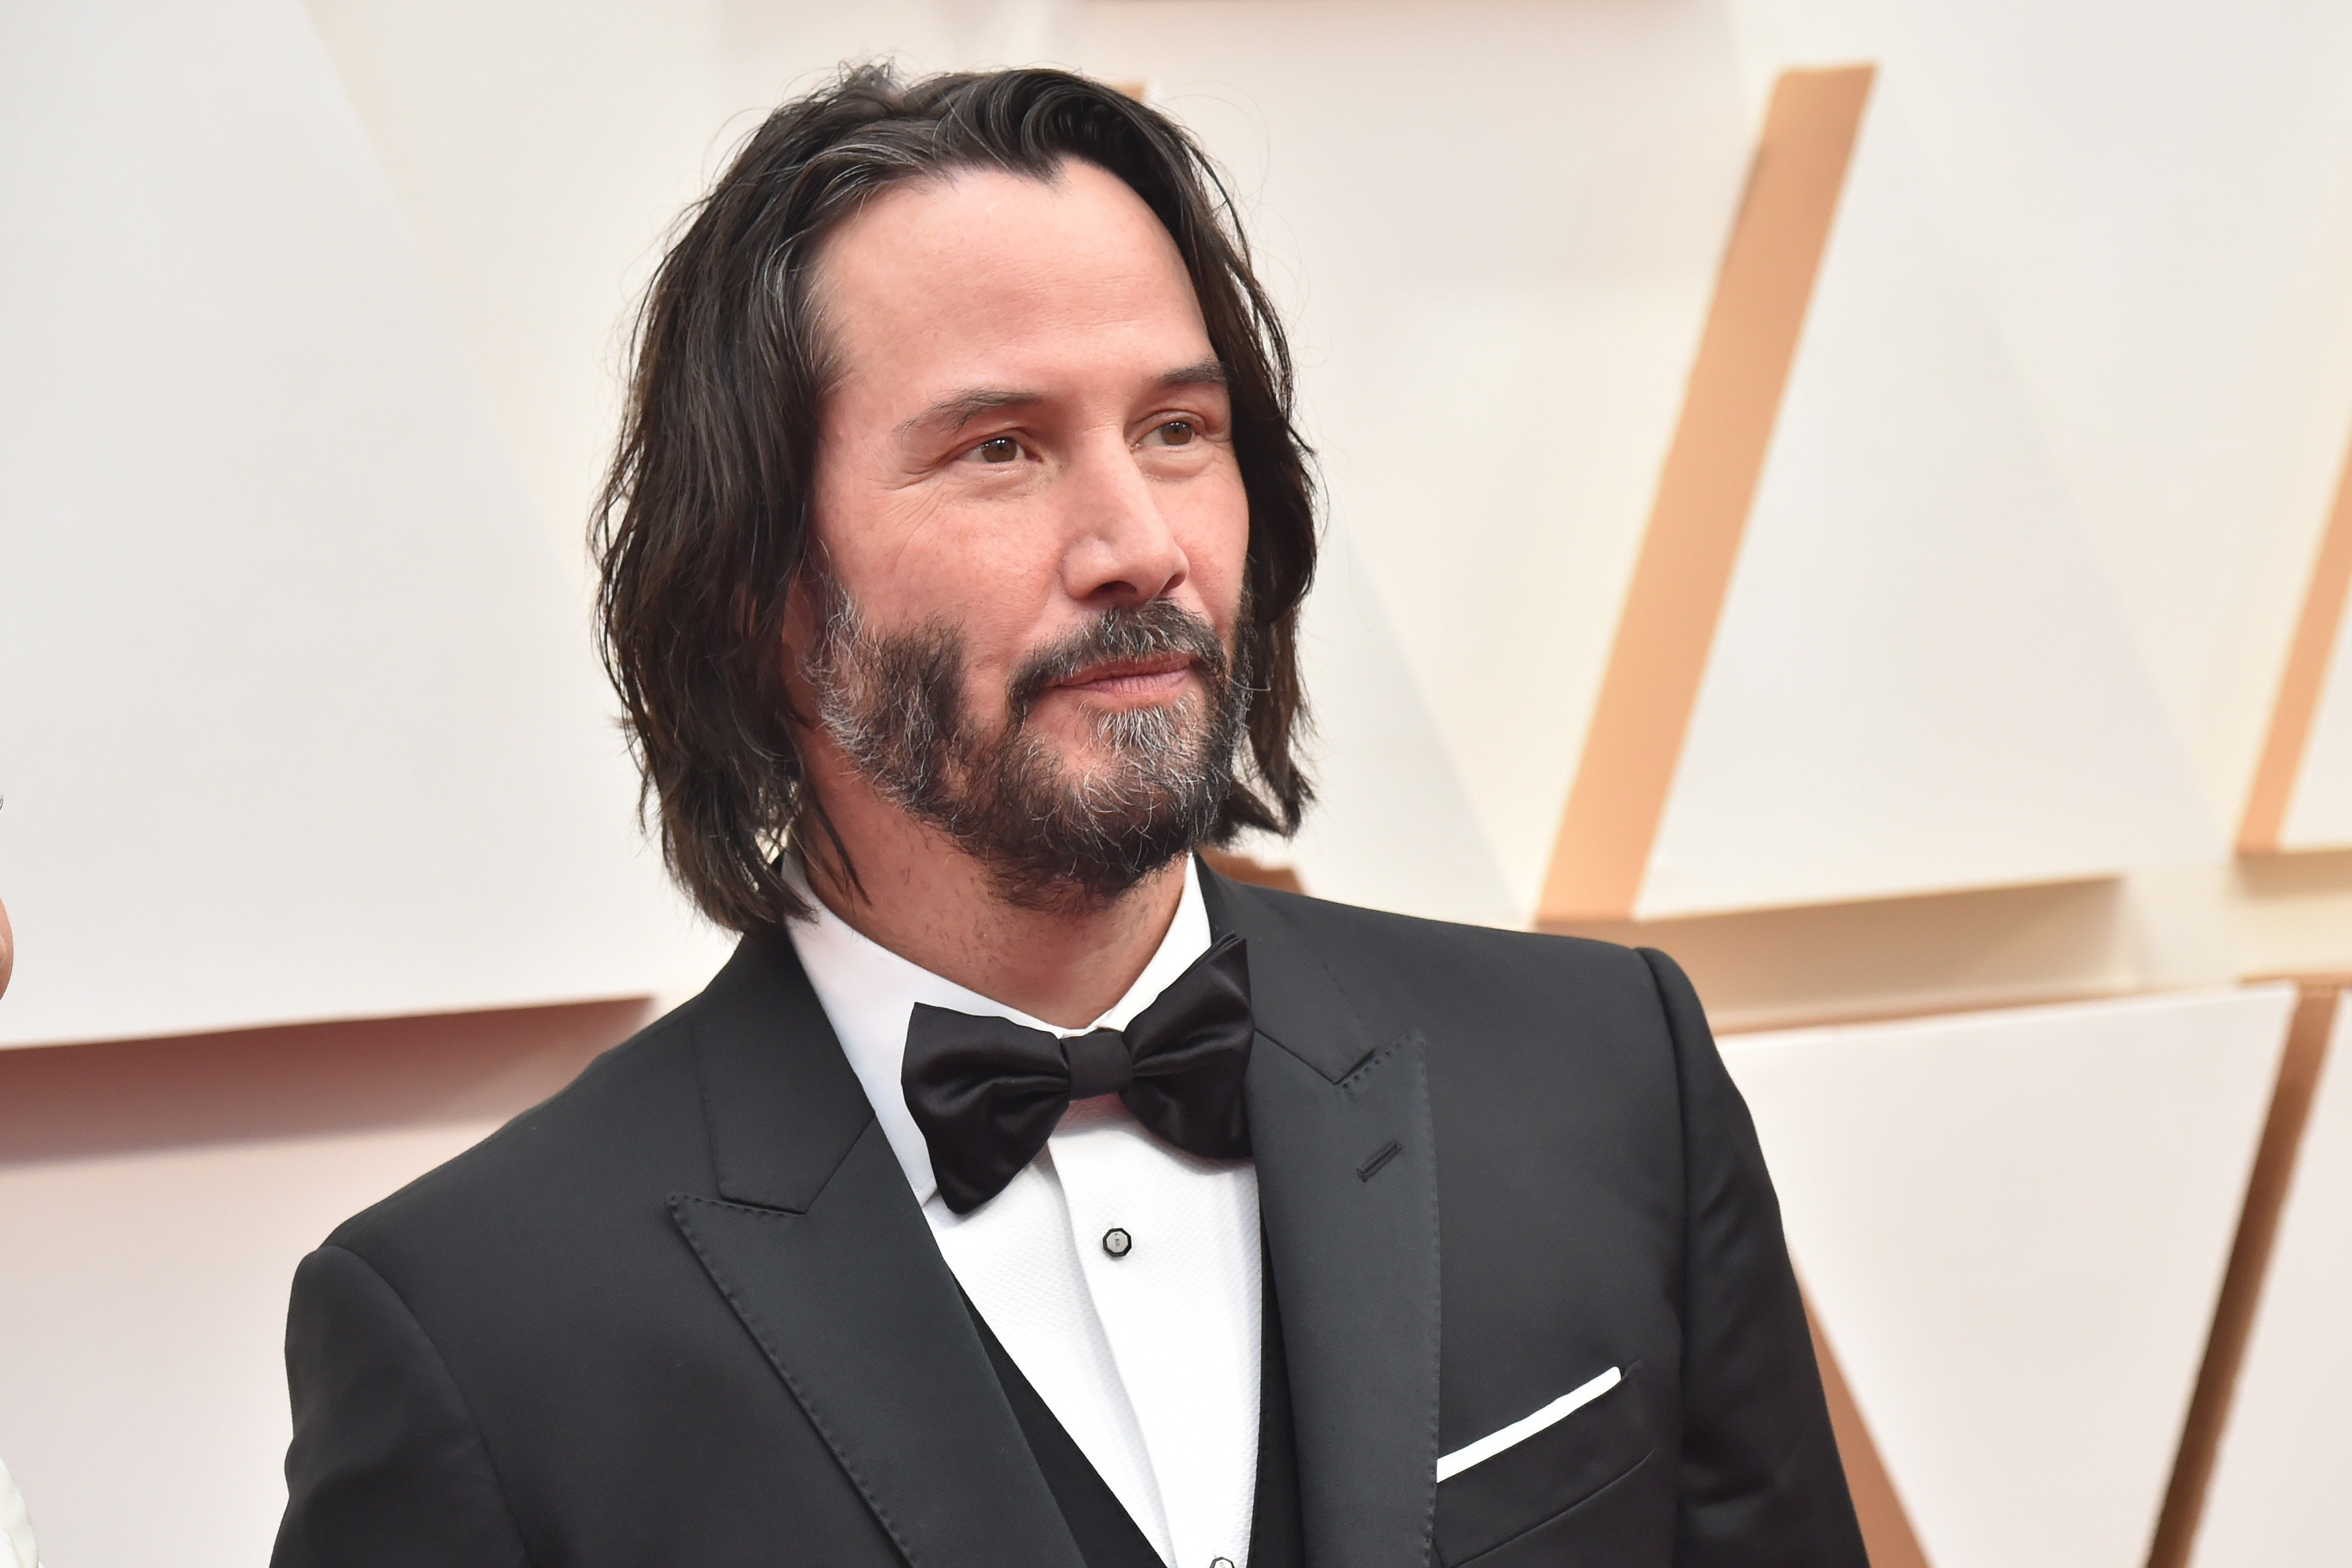 Image Credit: Getty Images/FilmMagic/Jeff Kravitz   Keanu Reeves at the Academy Awards